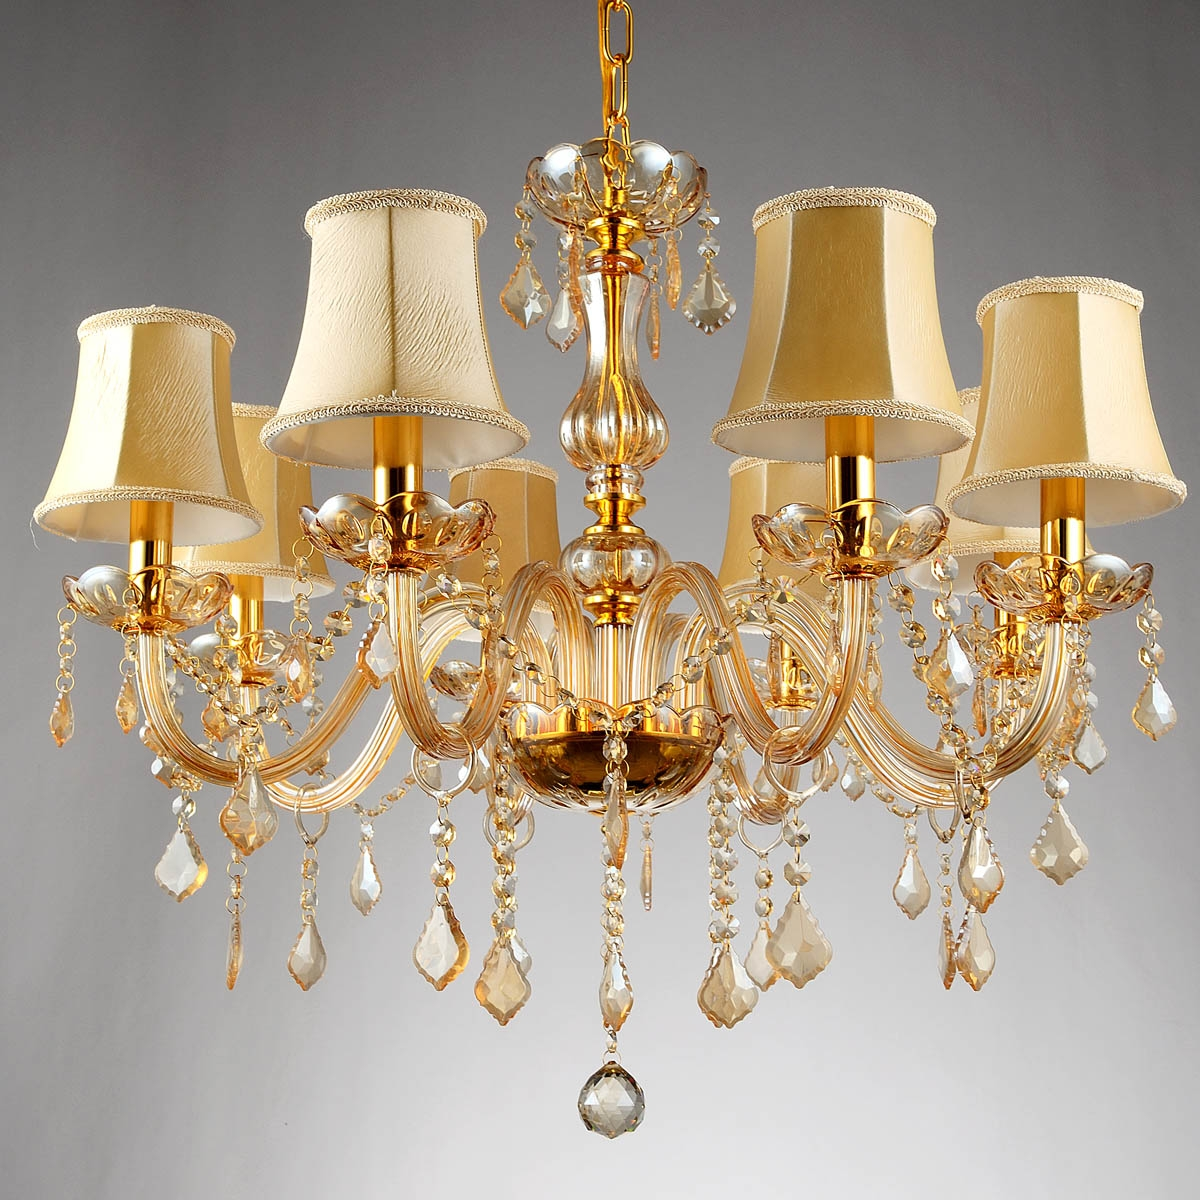 Popular Champagne Chandeliers Buy Cheap Champagne Chandeliers Lots With Regard To Crystal Gold Chandeliers (Image 21 of 25)